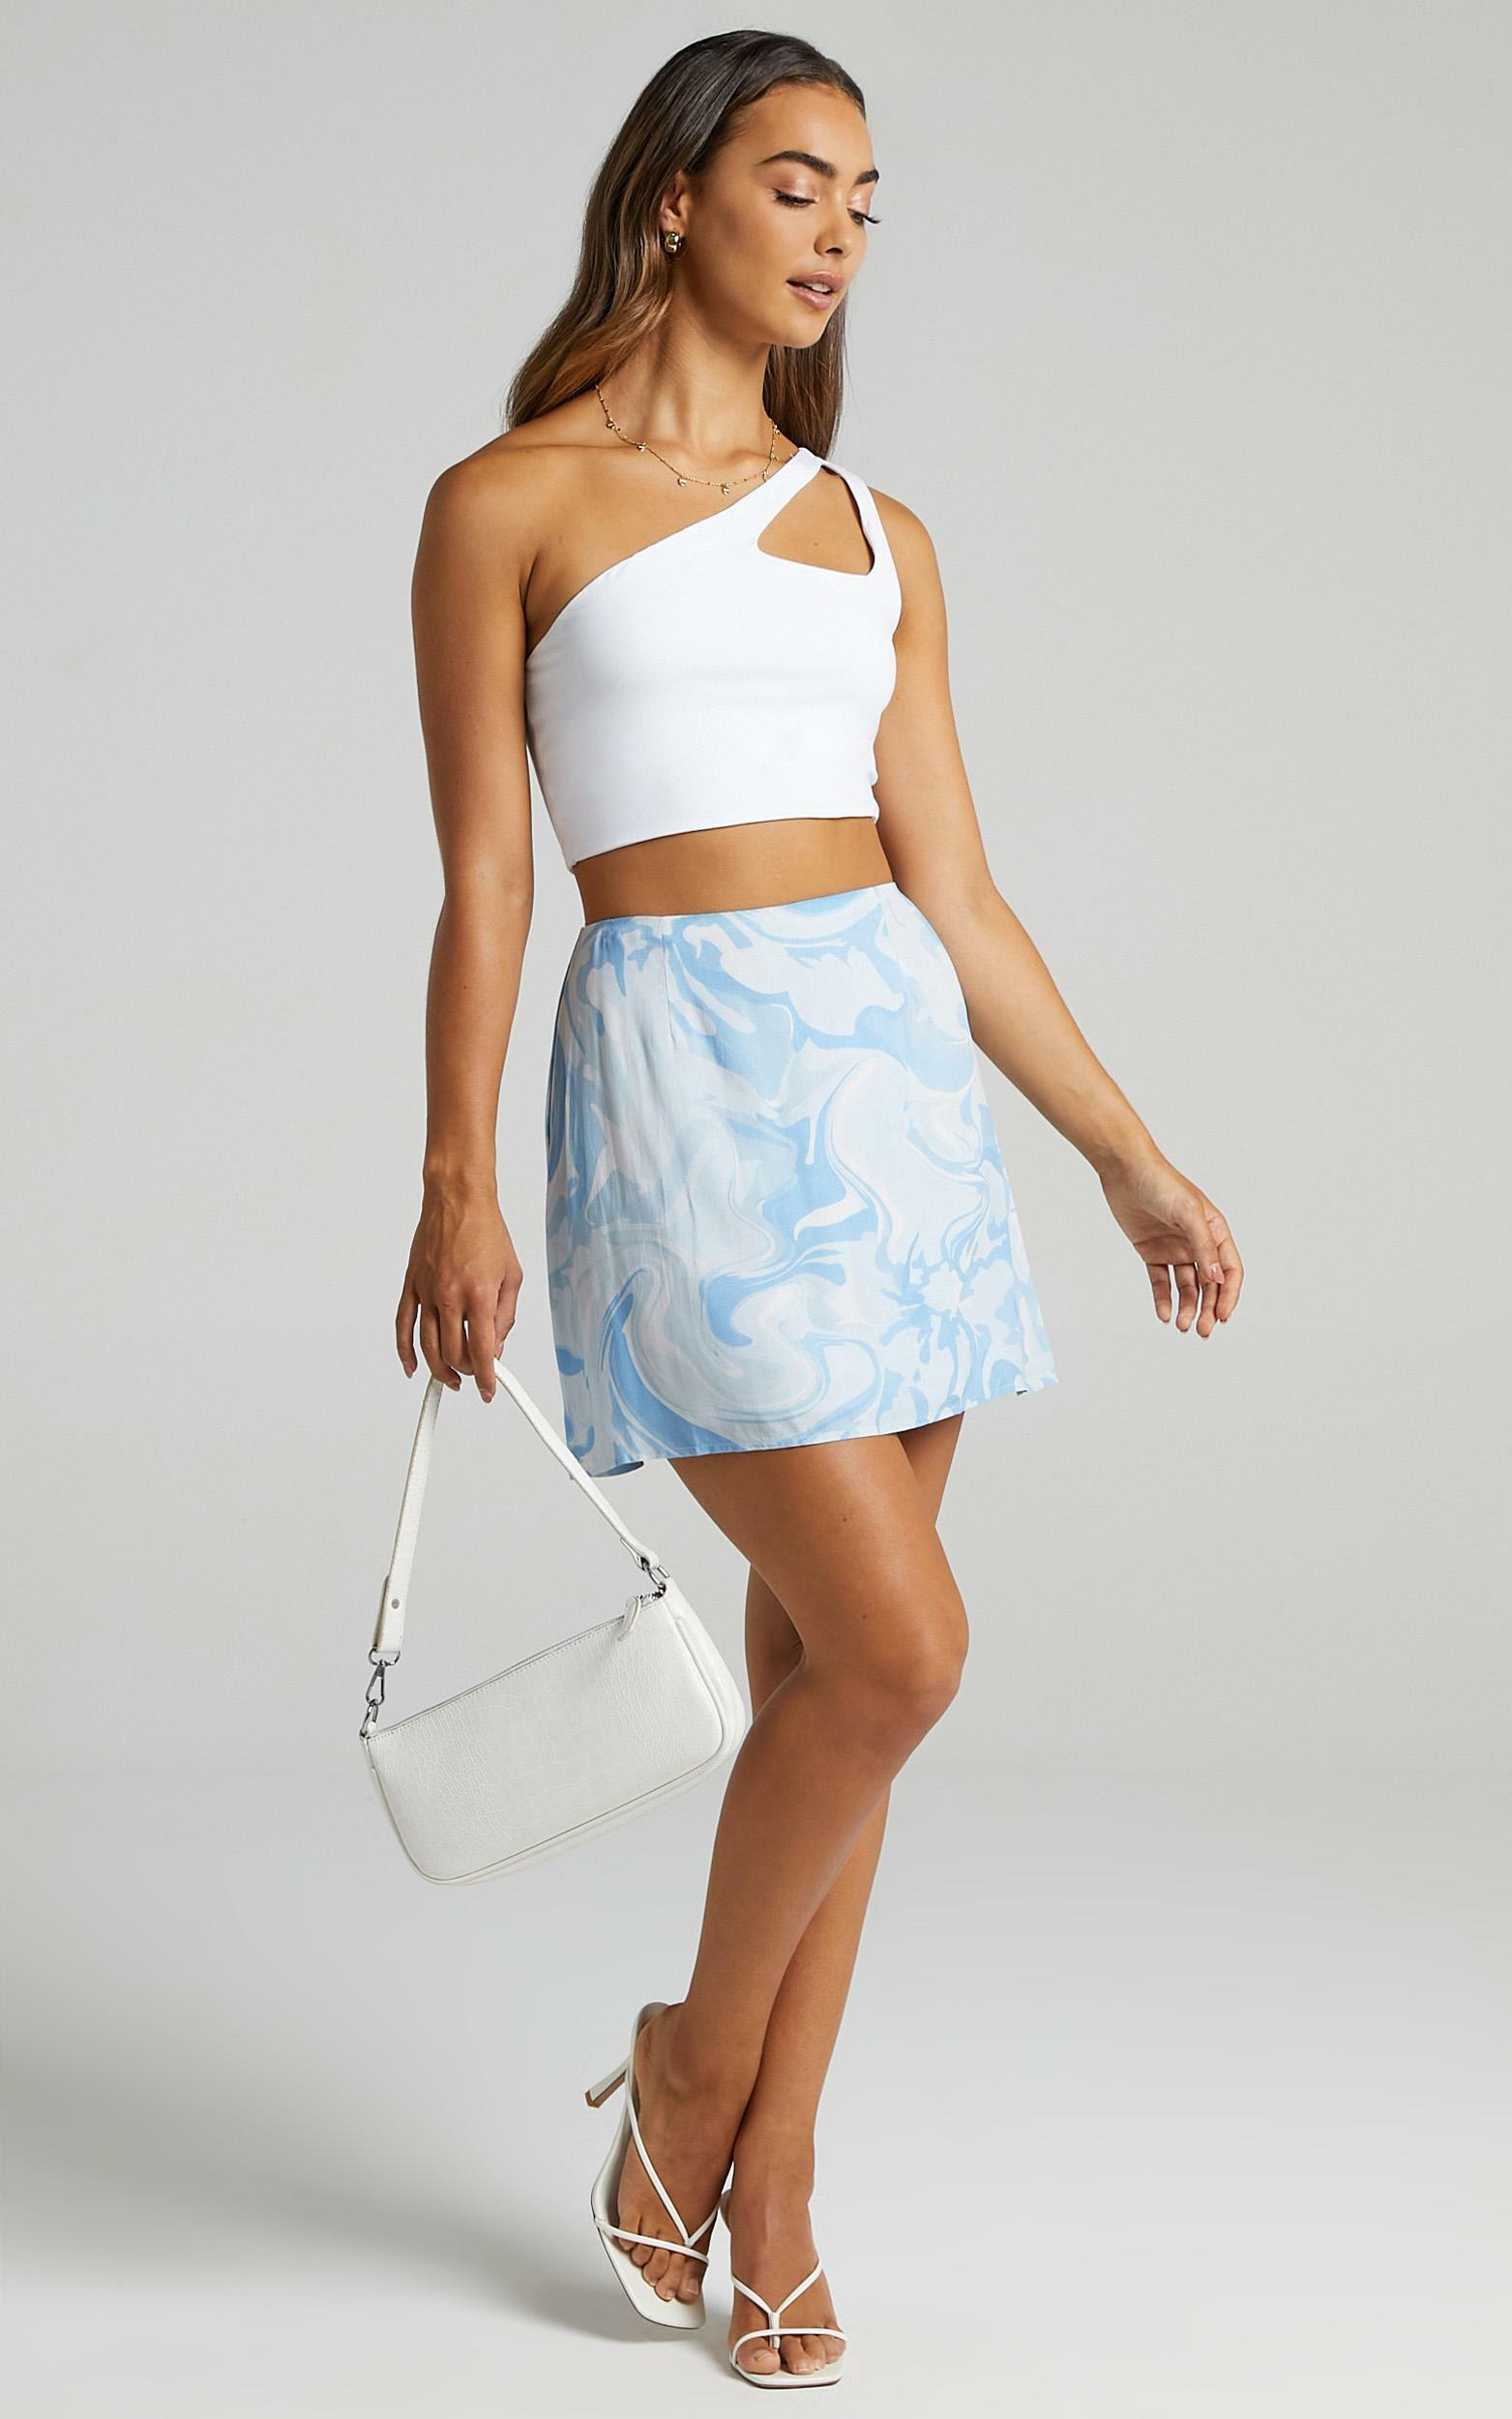 Sharnice Skirt in Blue Marble - 6 (XS), BLU1, hi-res image number null